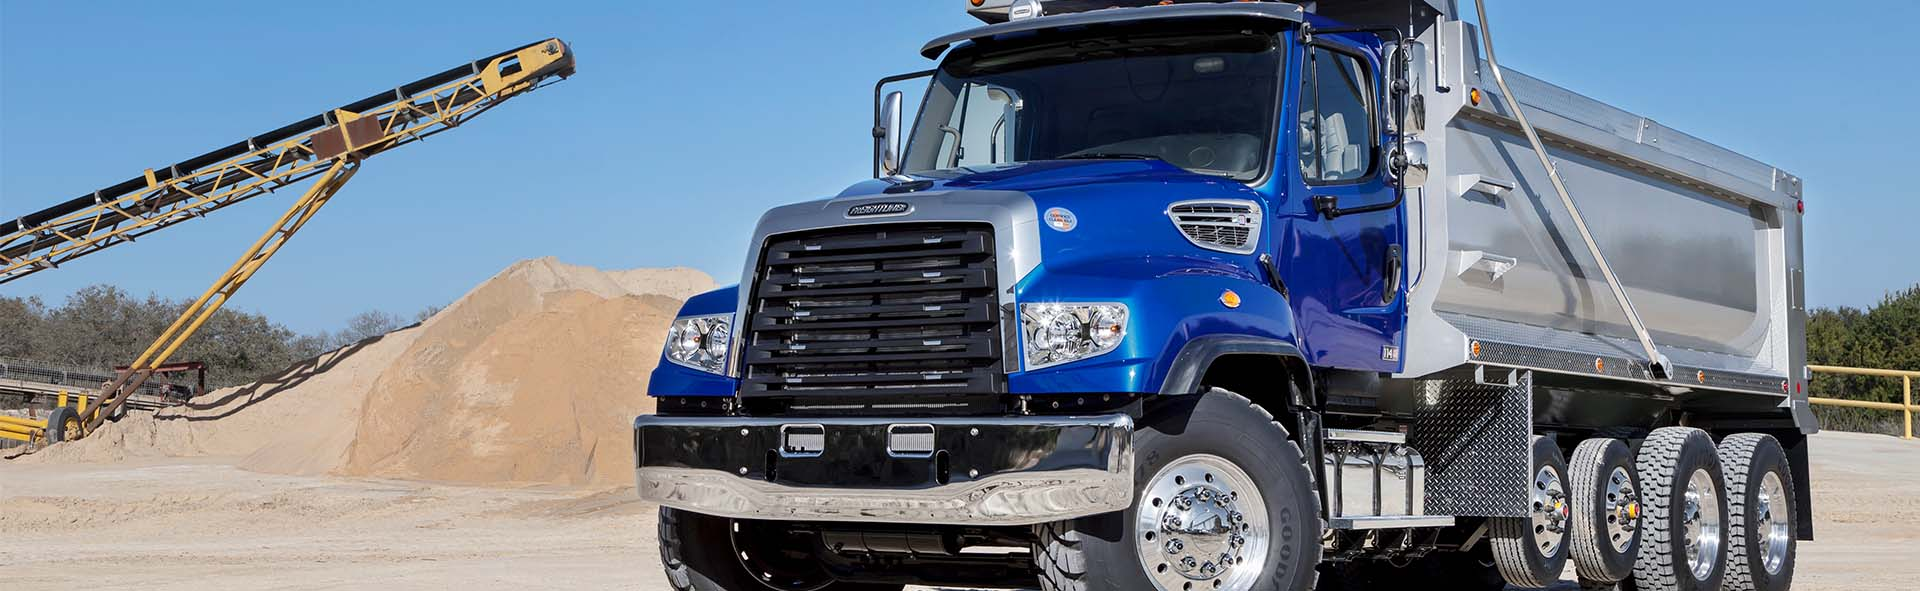 freightliner-one-hundred-and-eight-s-d